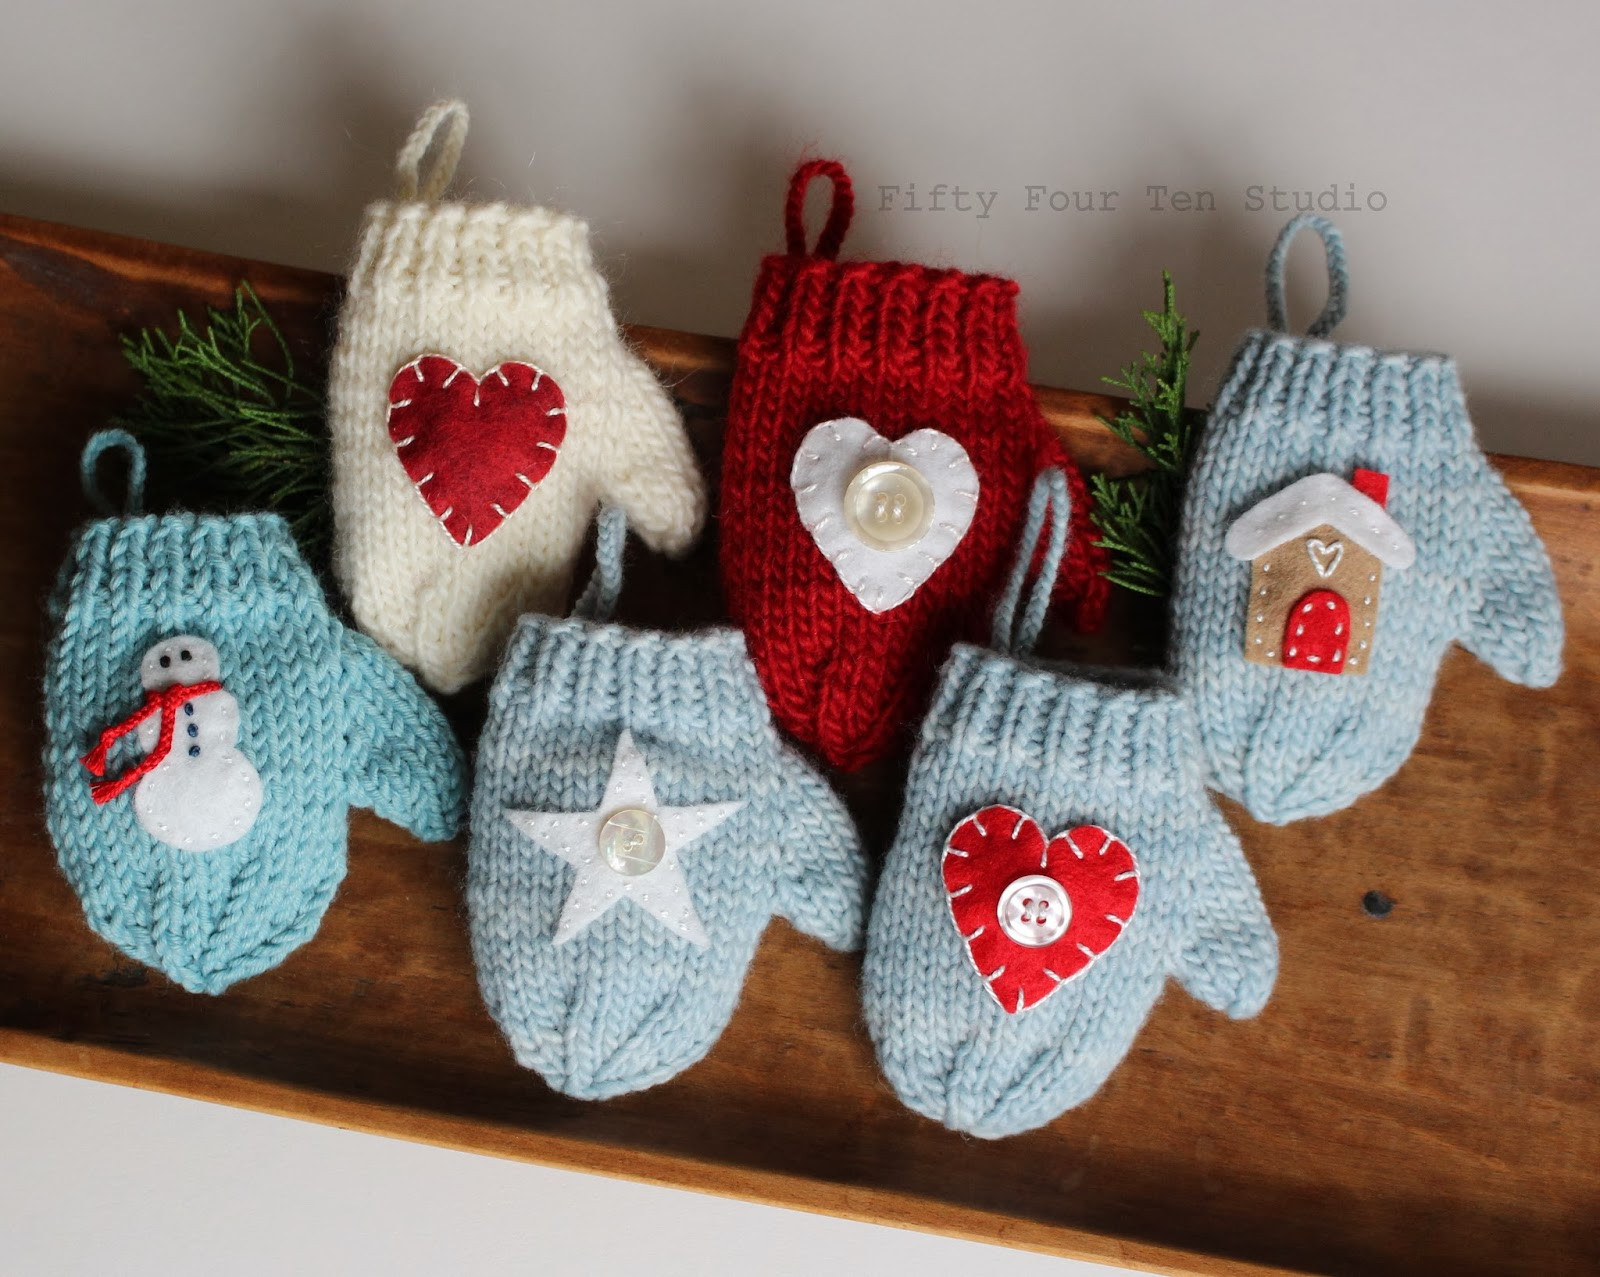 Lovely Fifty Four Ten Studio Time to Knit Christmas ornament Christmas ornament Knitting Patterns Of Beautiful 41 Pics Christmas ornament Knitting Patterns